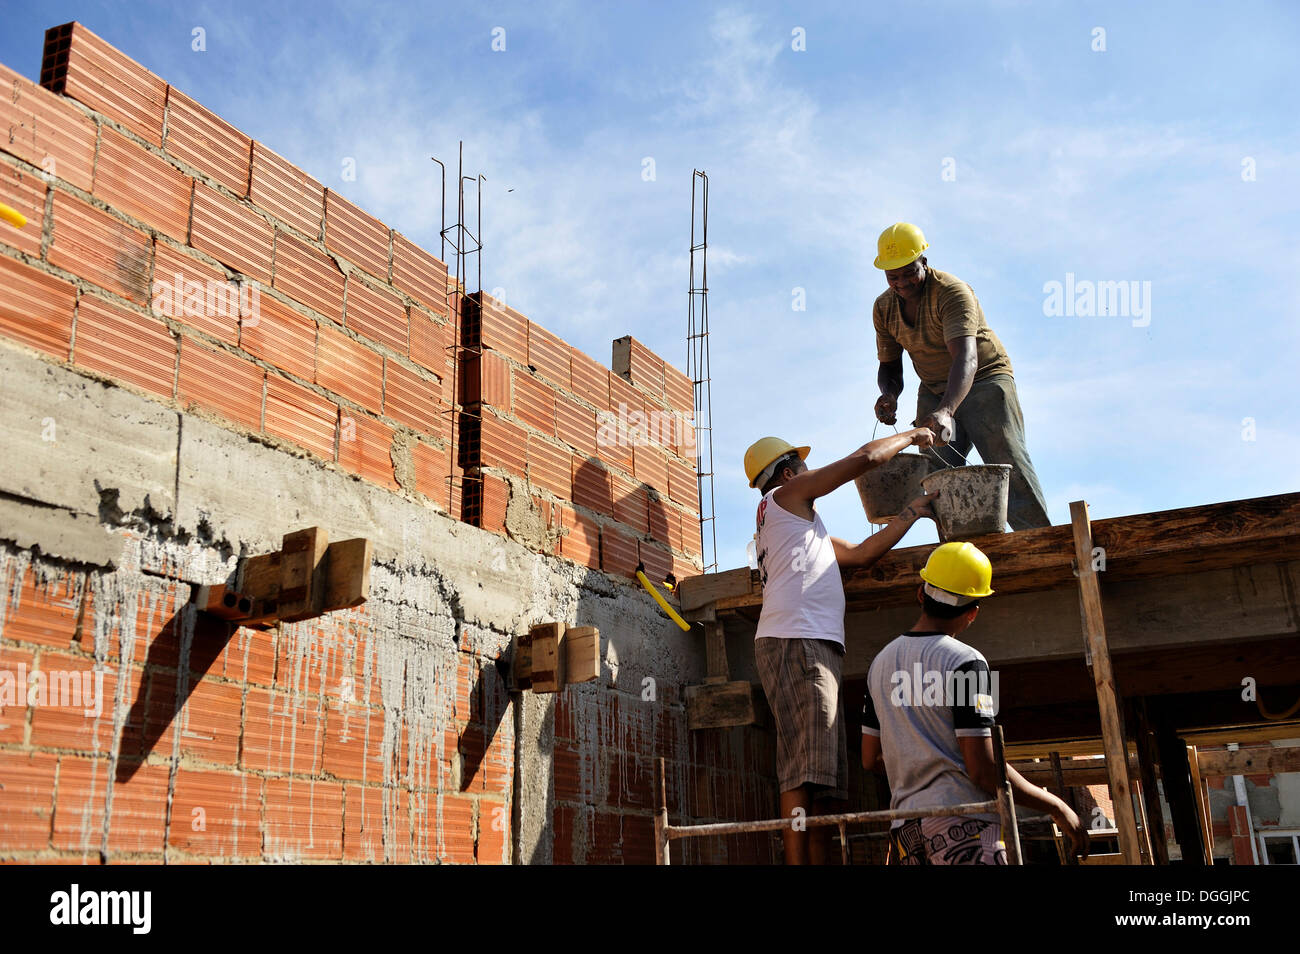 People from the slums, favelas, working on a building site of the 'Esperanca' housing co-operative, each family helping out on - Stock Image